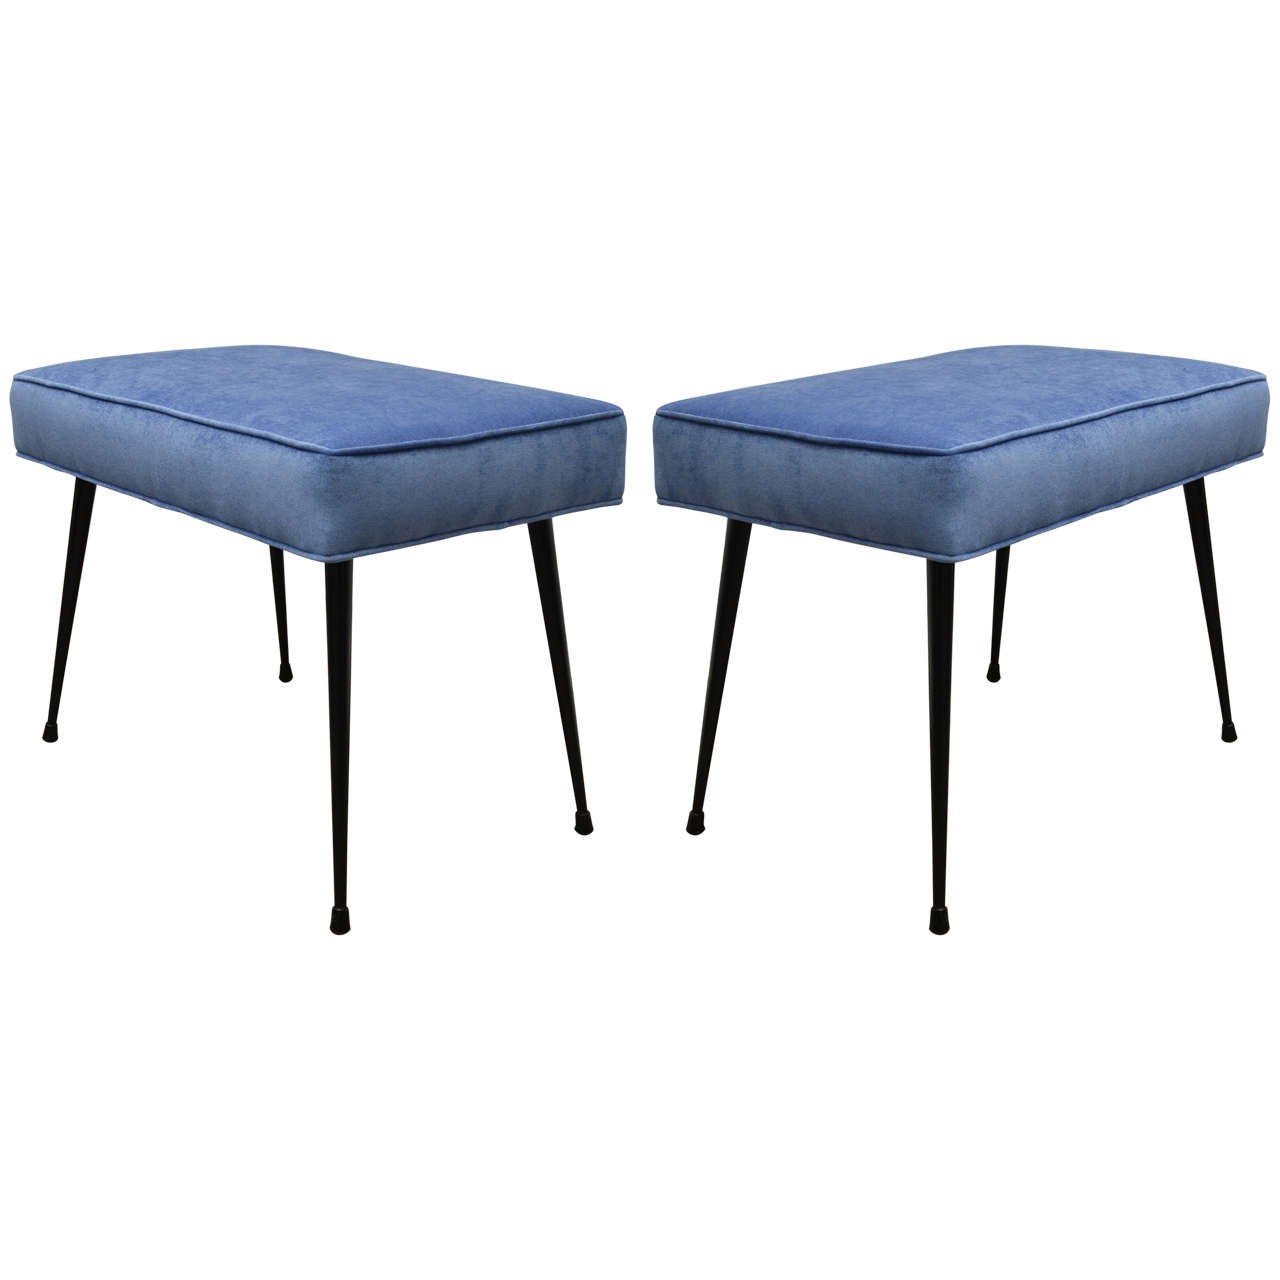 Pair Of Blue Upholstered Benches At 1stdibs